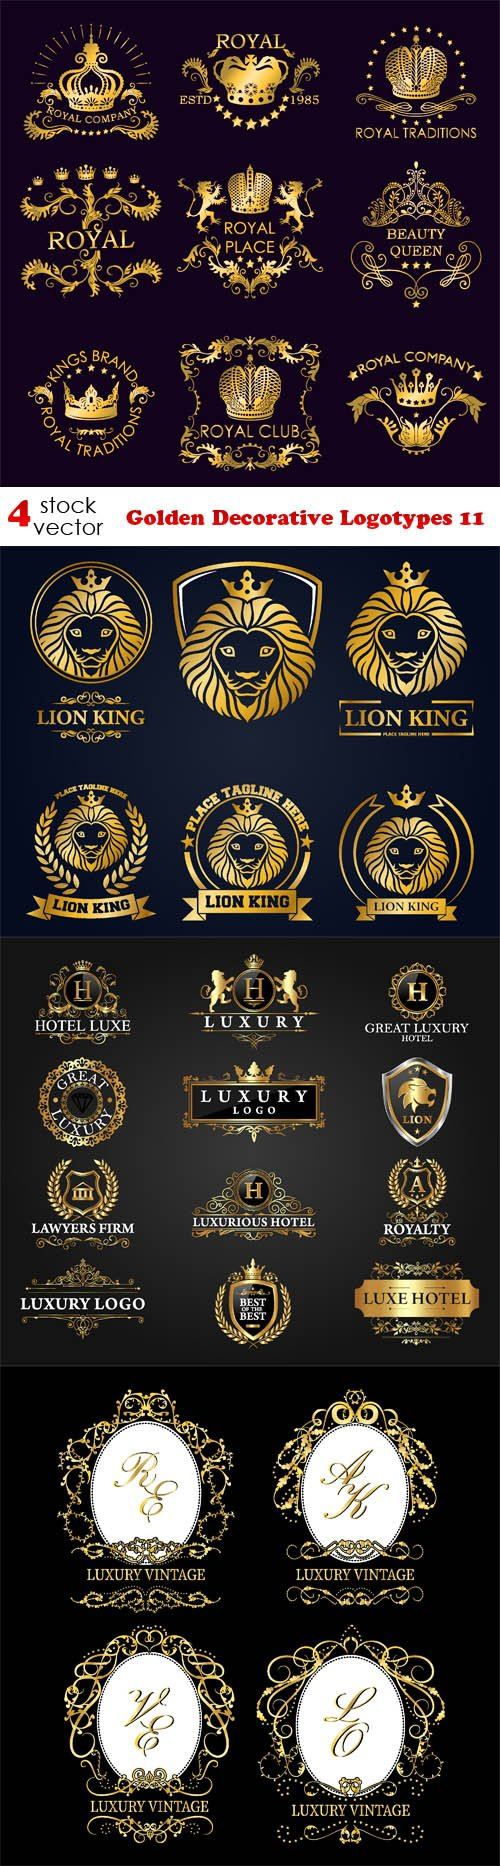 Vectors - Golden Decorative Logotypes 11